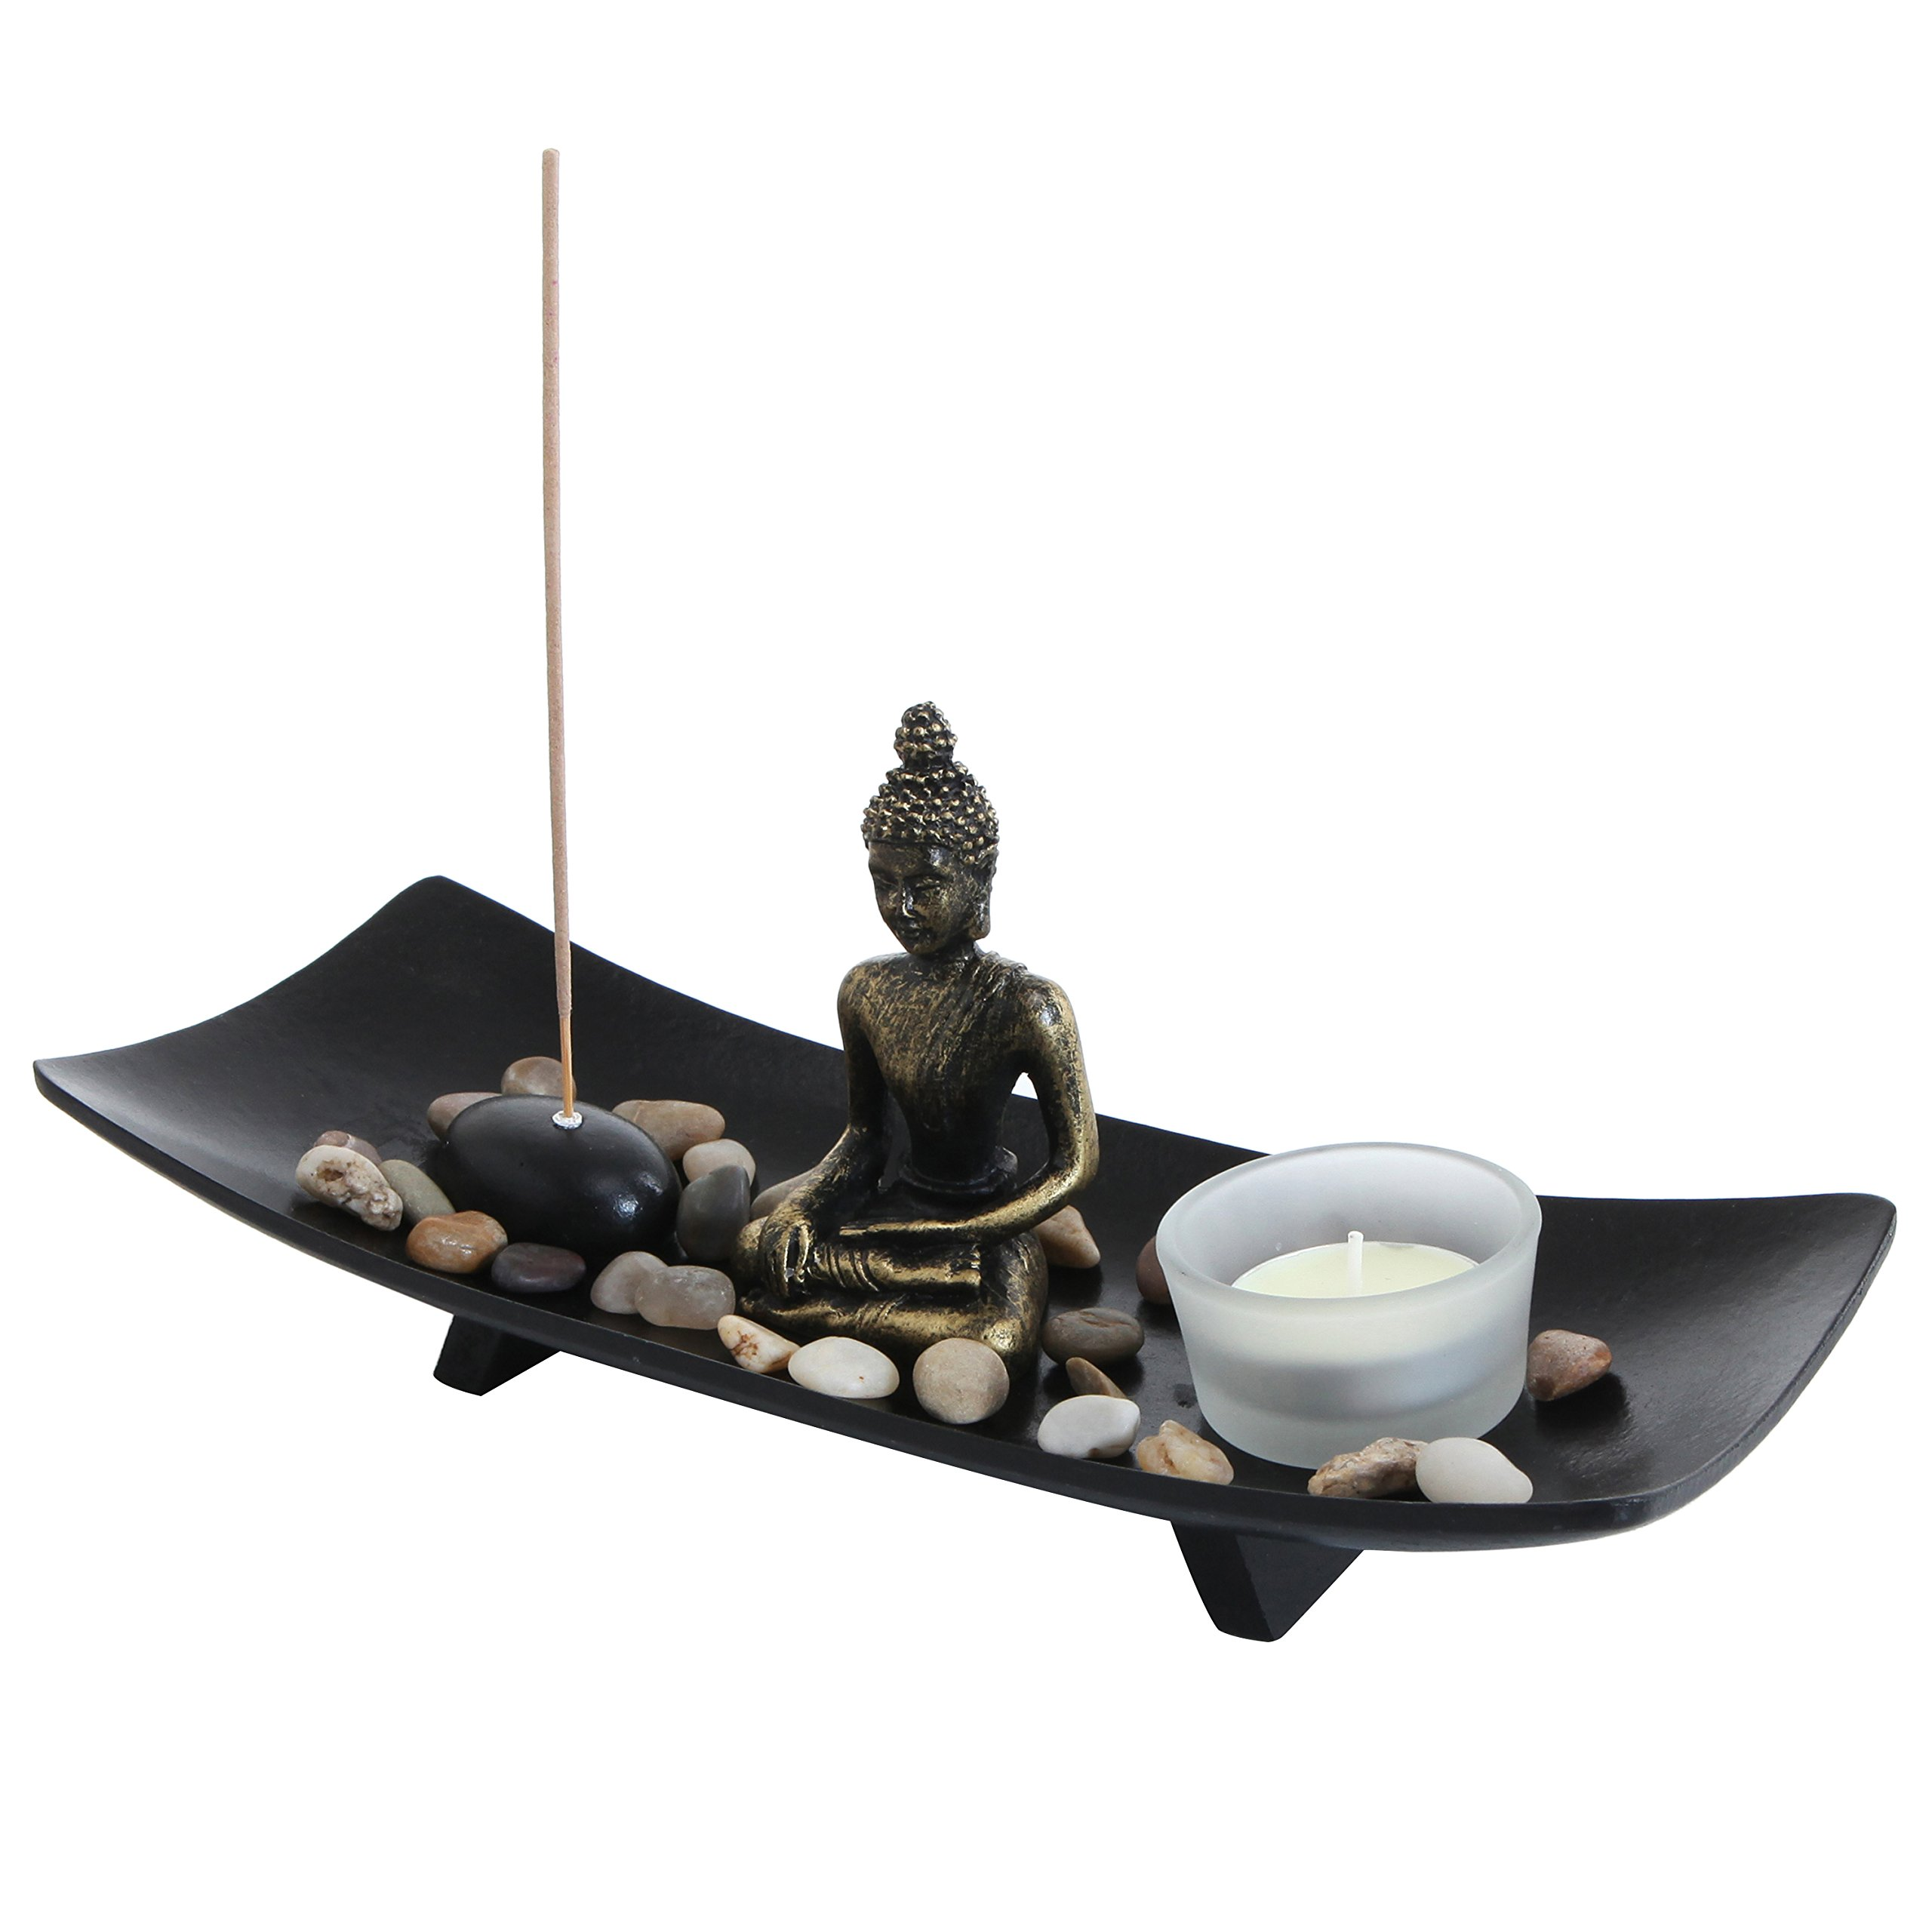 MyGift Zen Garden Buddha Statue Glass Tealight Candle & Incense Burner Holder, Black by MyGift